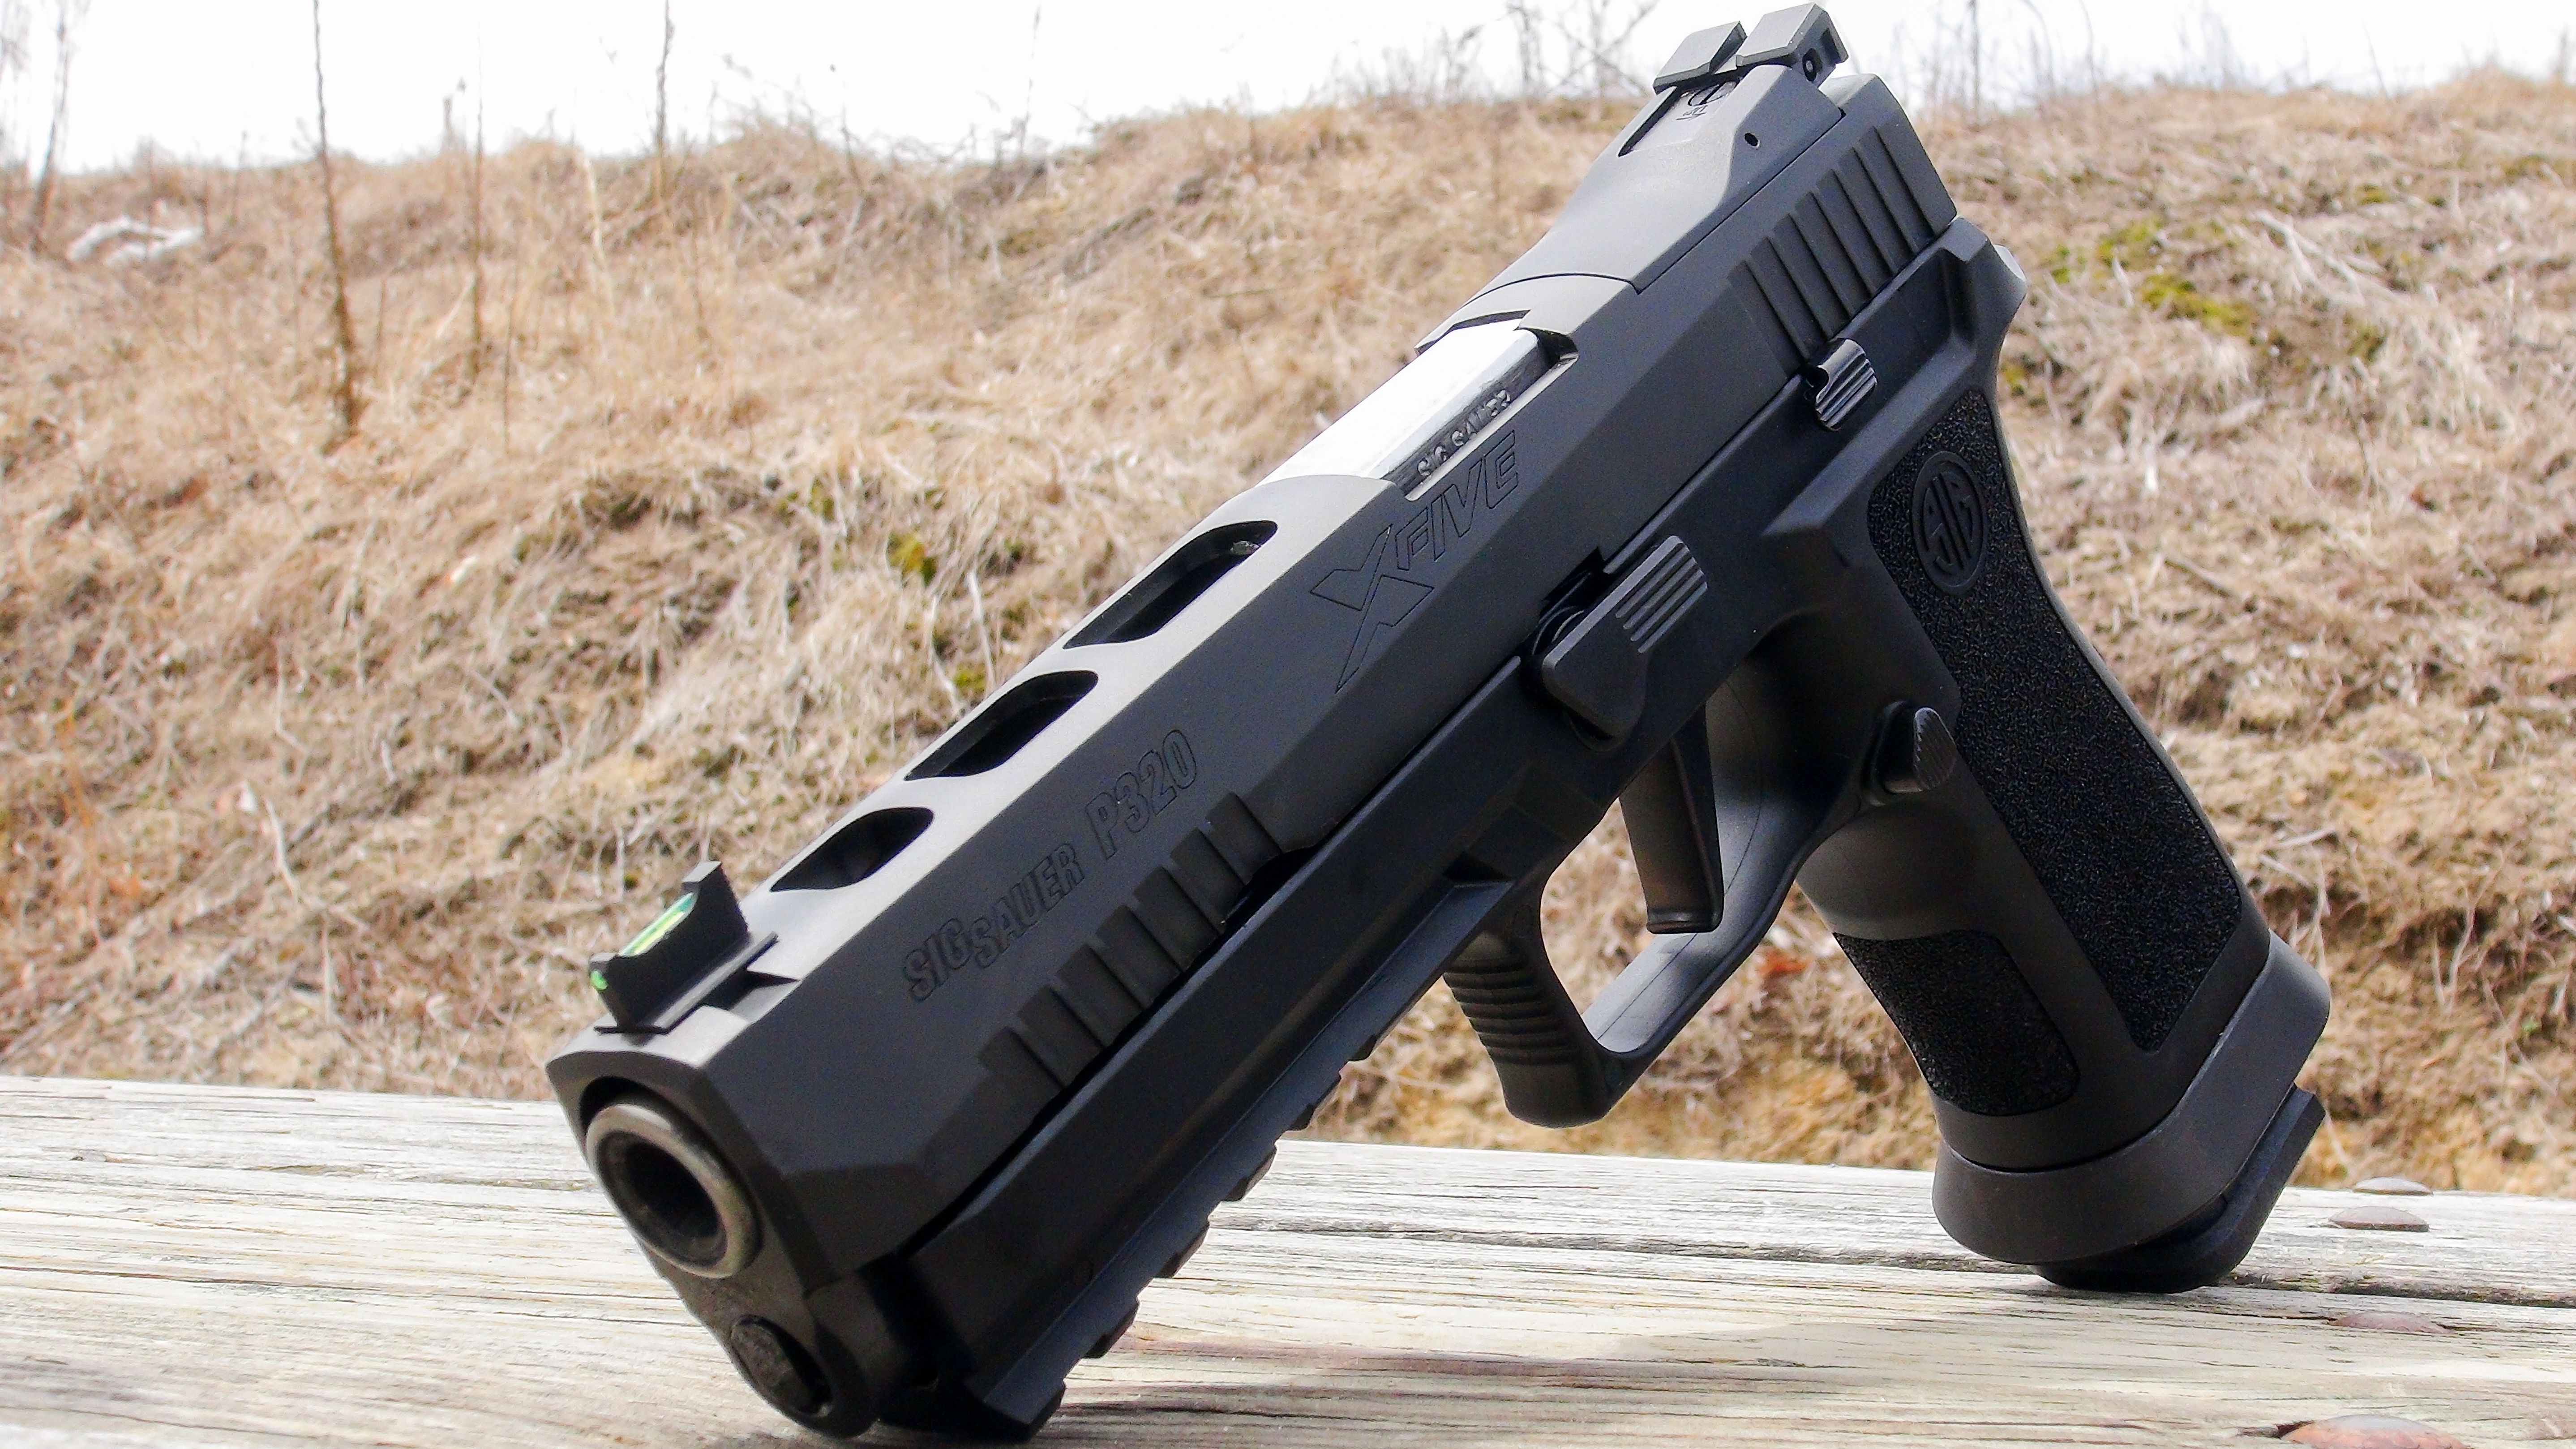 A Mega-Capacity Sig Sauer P320? The 21+1 Full Size X-Five